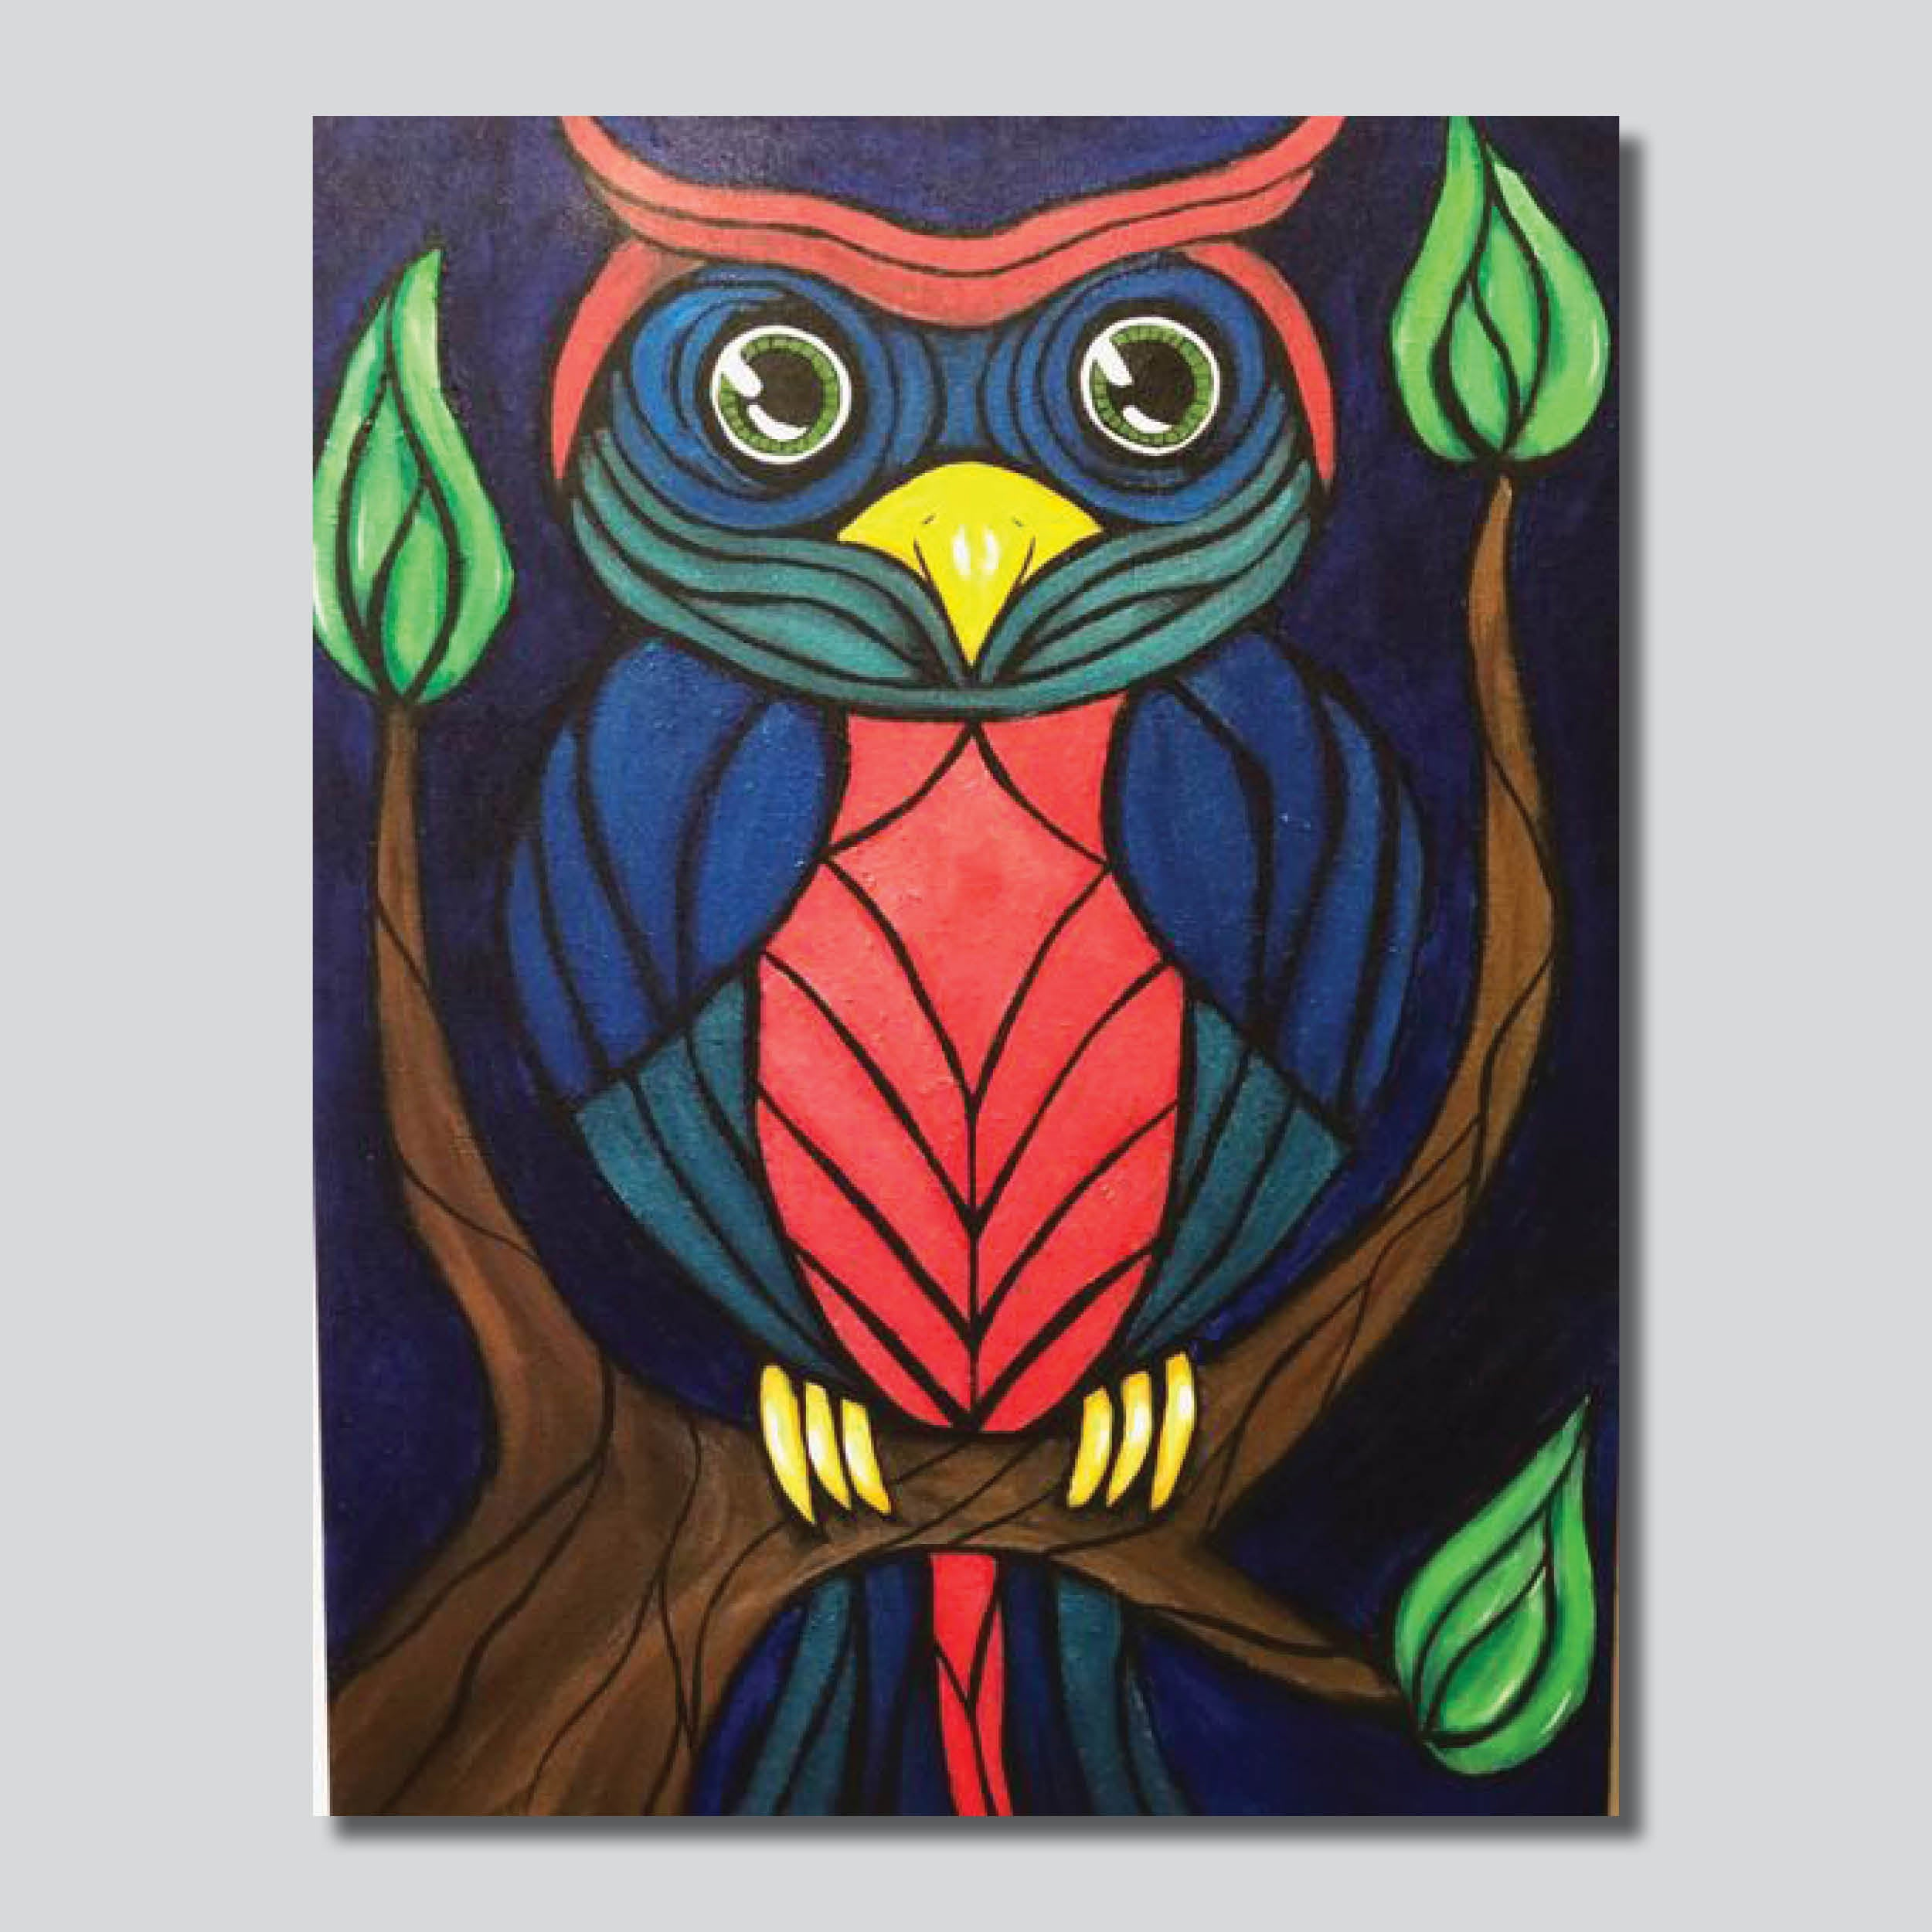 """Original Art"" Metallic Owl/18"" x 24"" Acrylic On Canvas"